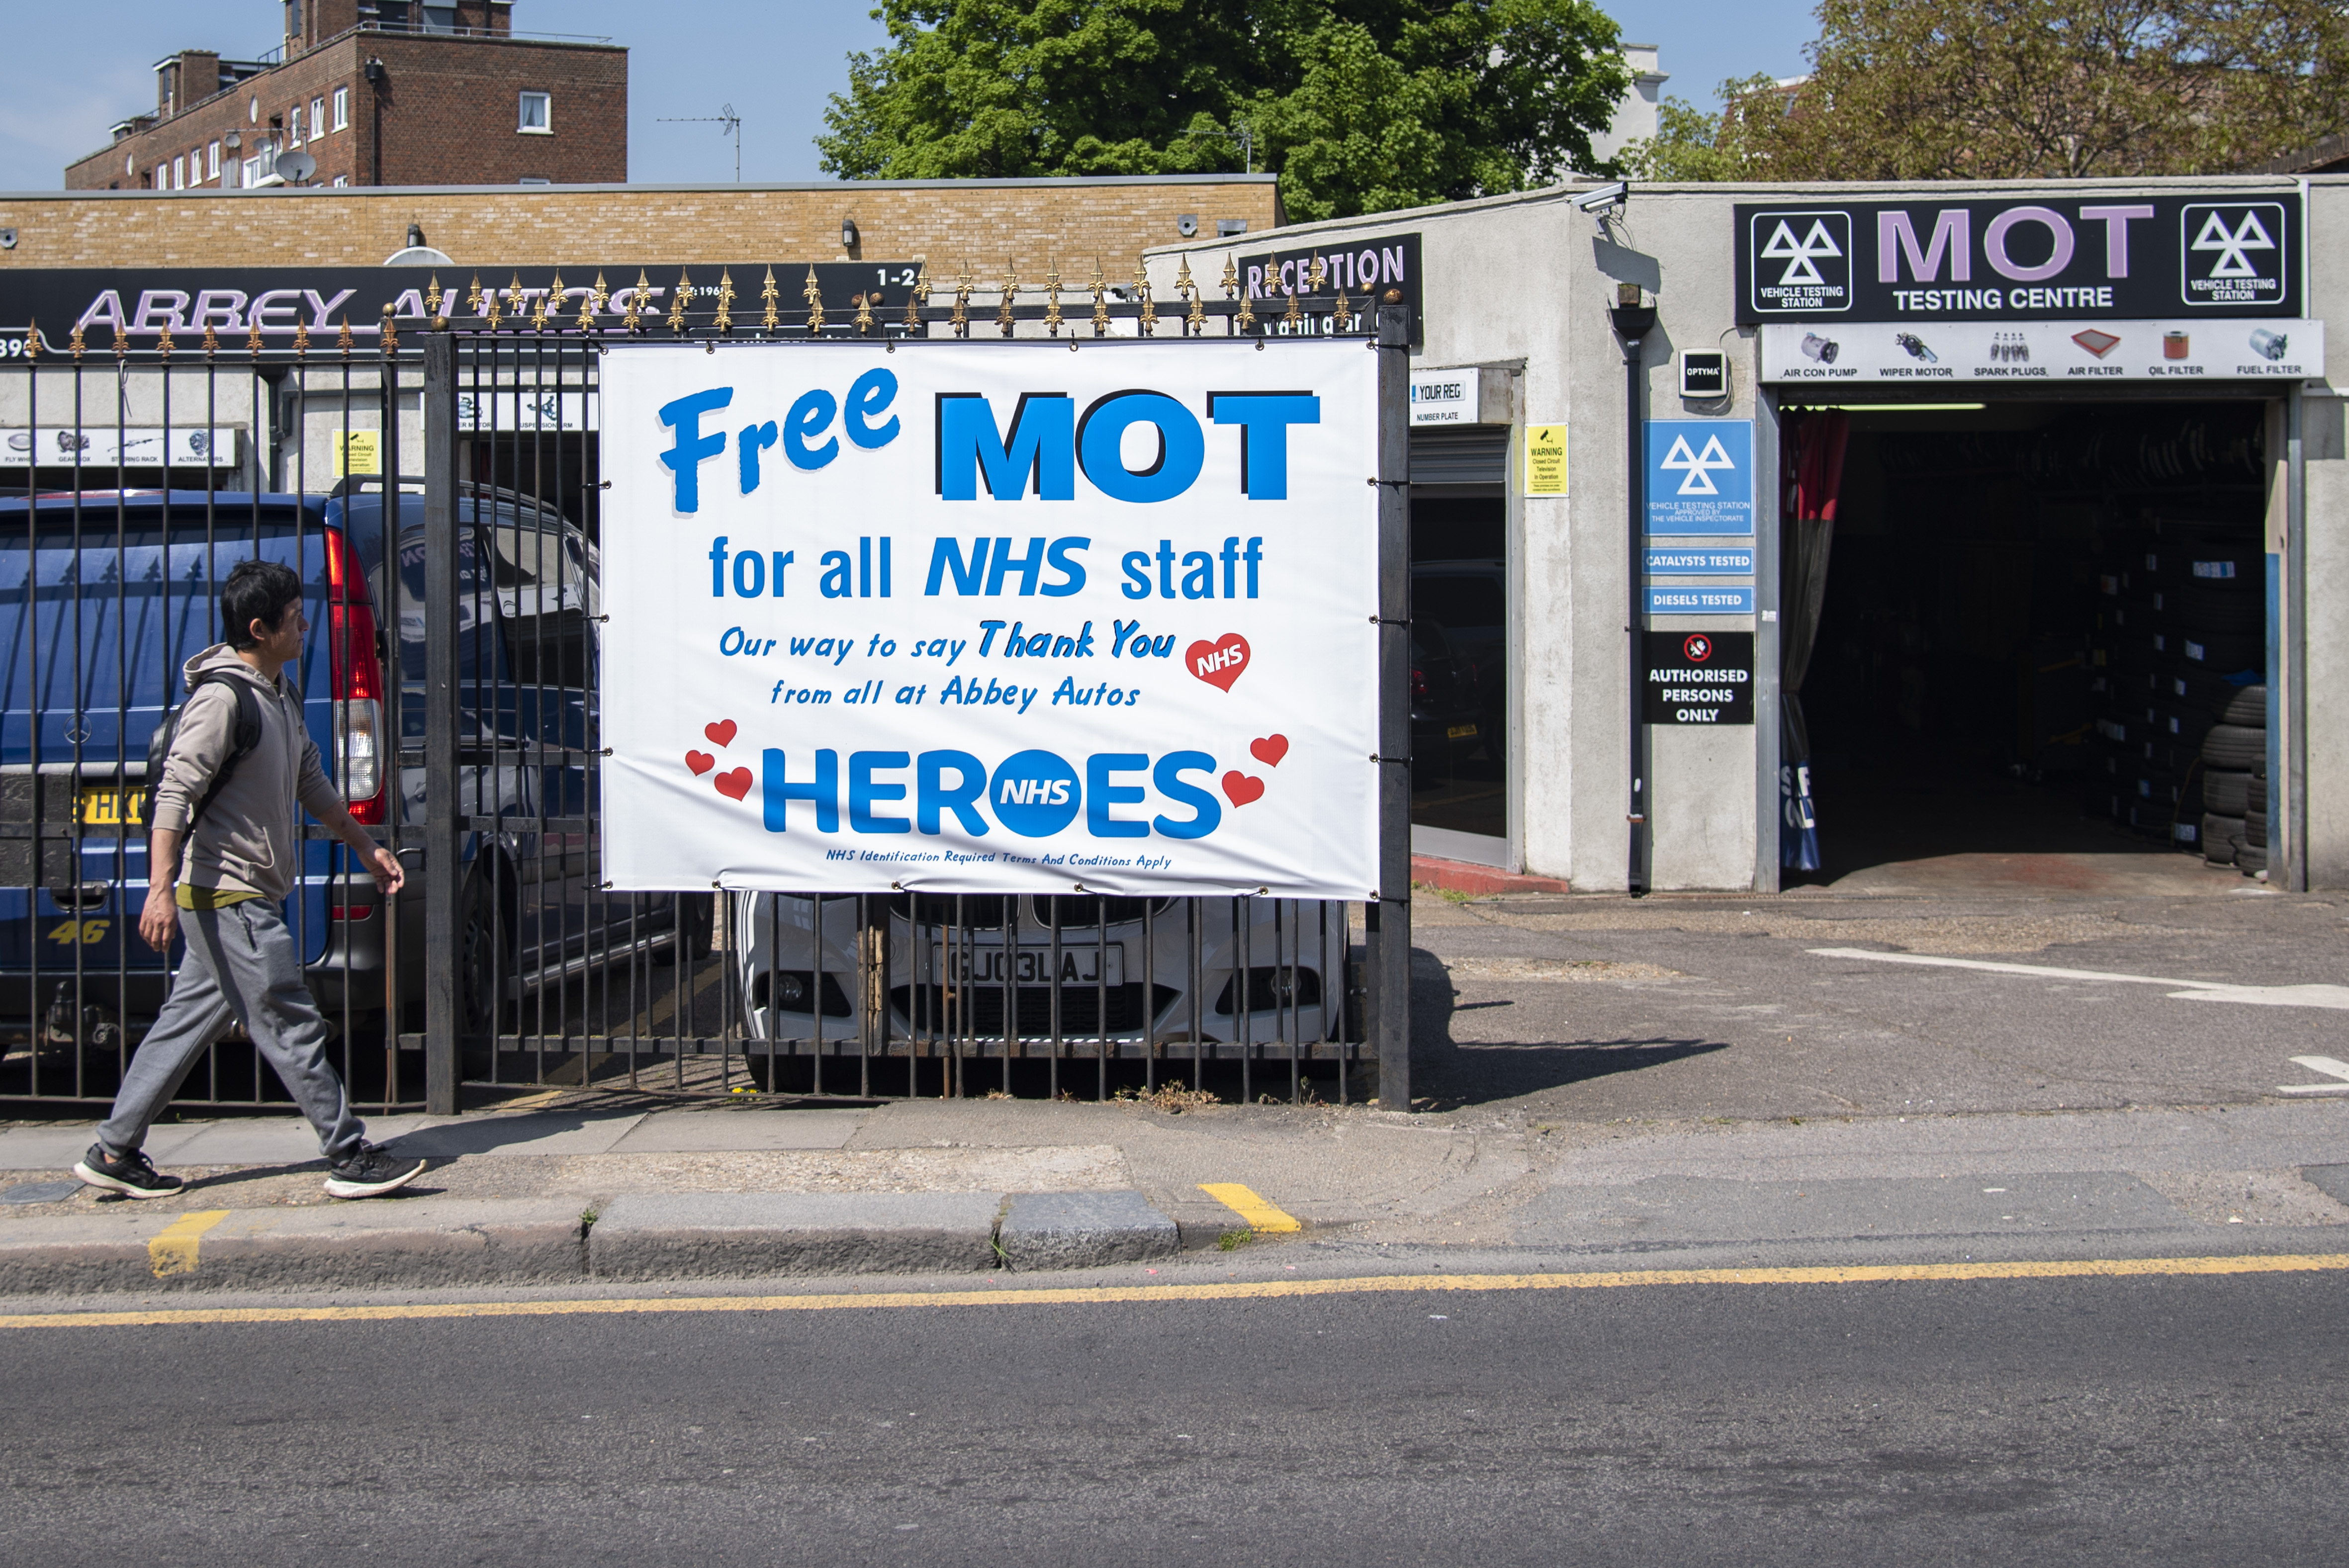 A man walks past a garage offering free MOT's for all NHS (National Health Service) staff on 23th April 2020 in London, United Kingdom.There have been almost 133,495 reported cases of the COVID-19 coronavirus in the United Kingdom and almost 19,000 deaths. The country is in its fifth week of lockdown measures aimed at slowing the spread of the virus. (photo by Claire Doherty/In Pictures via Getty Images)